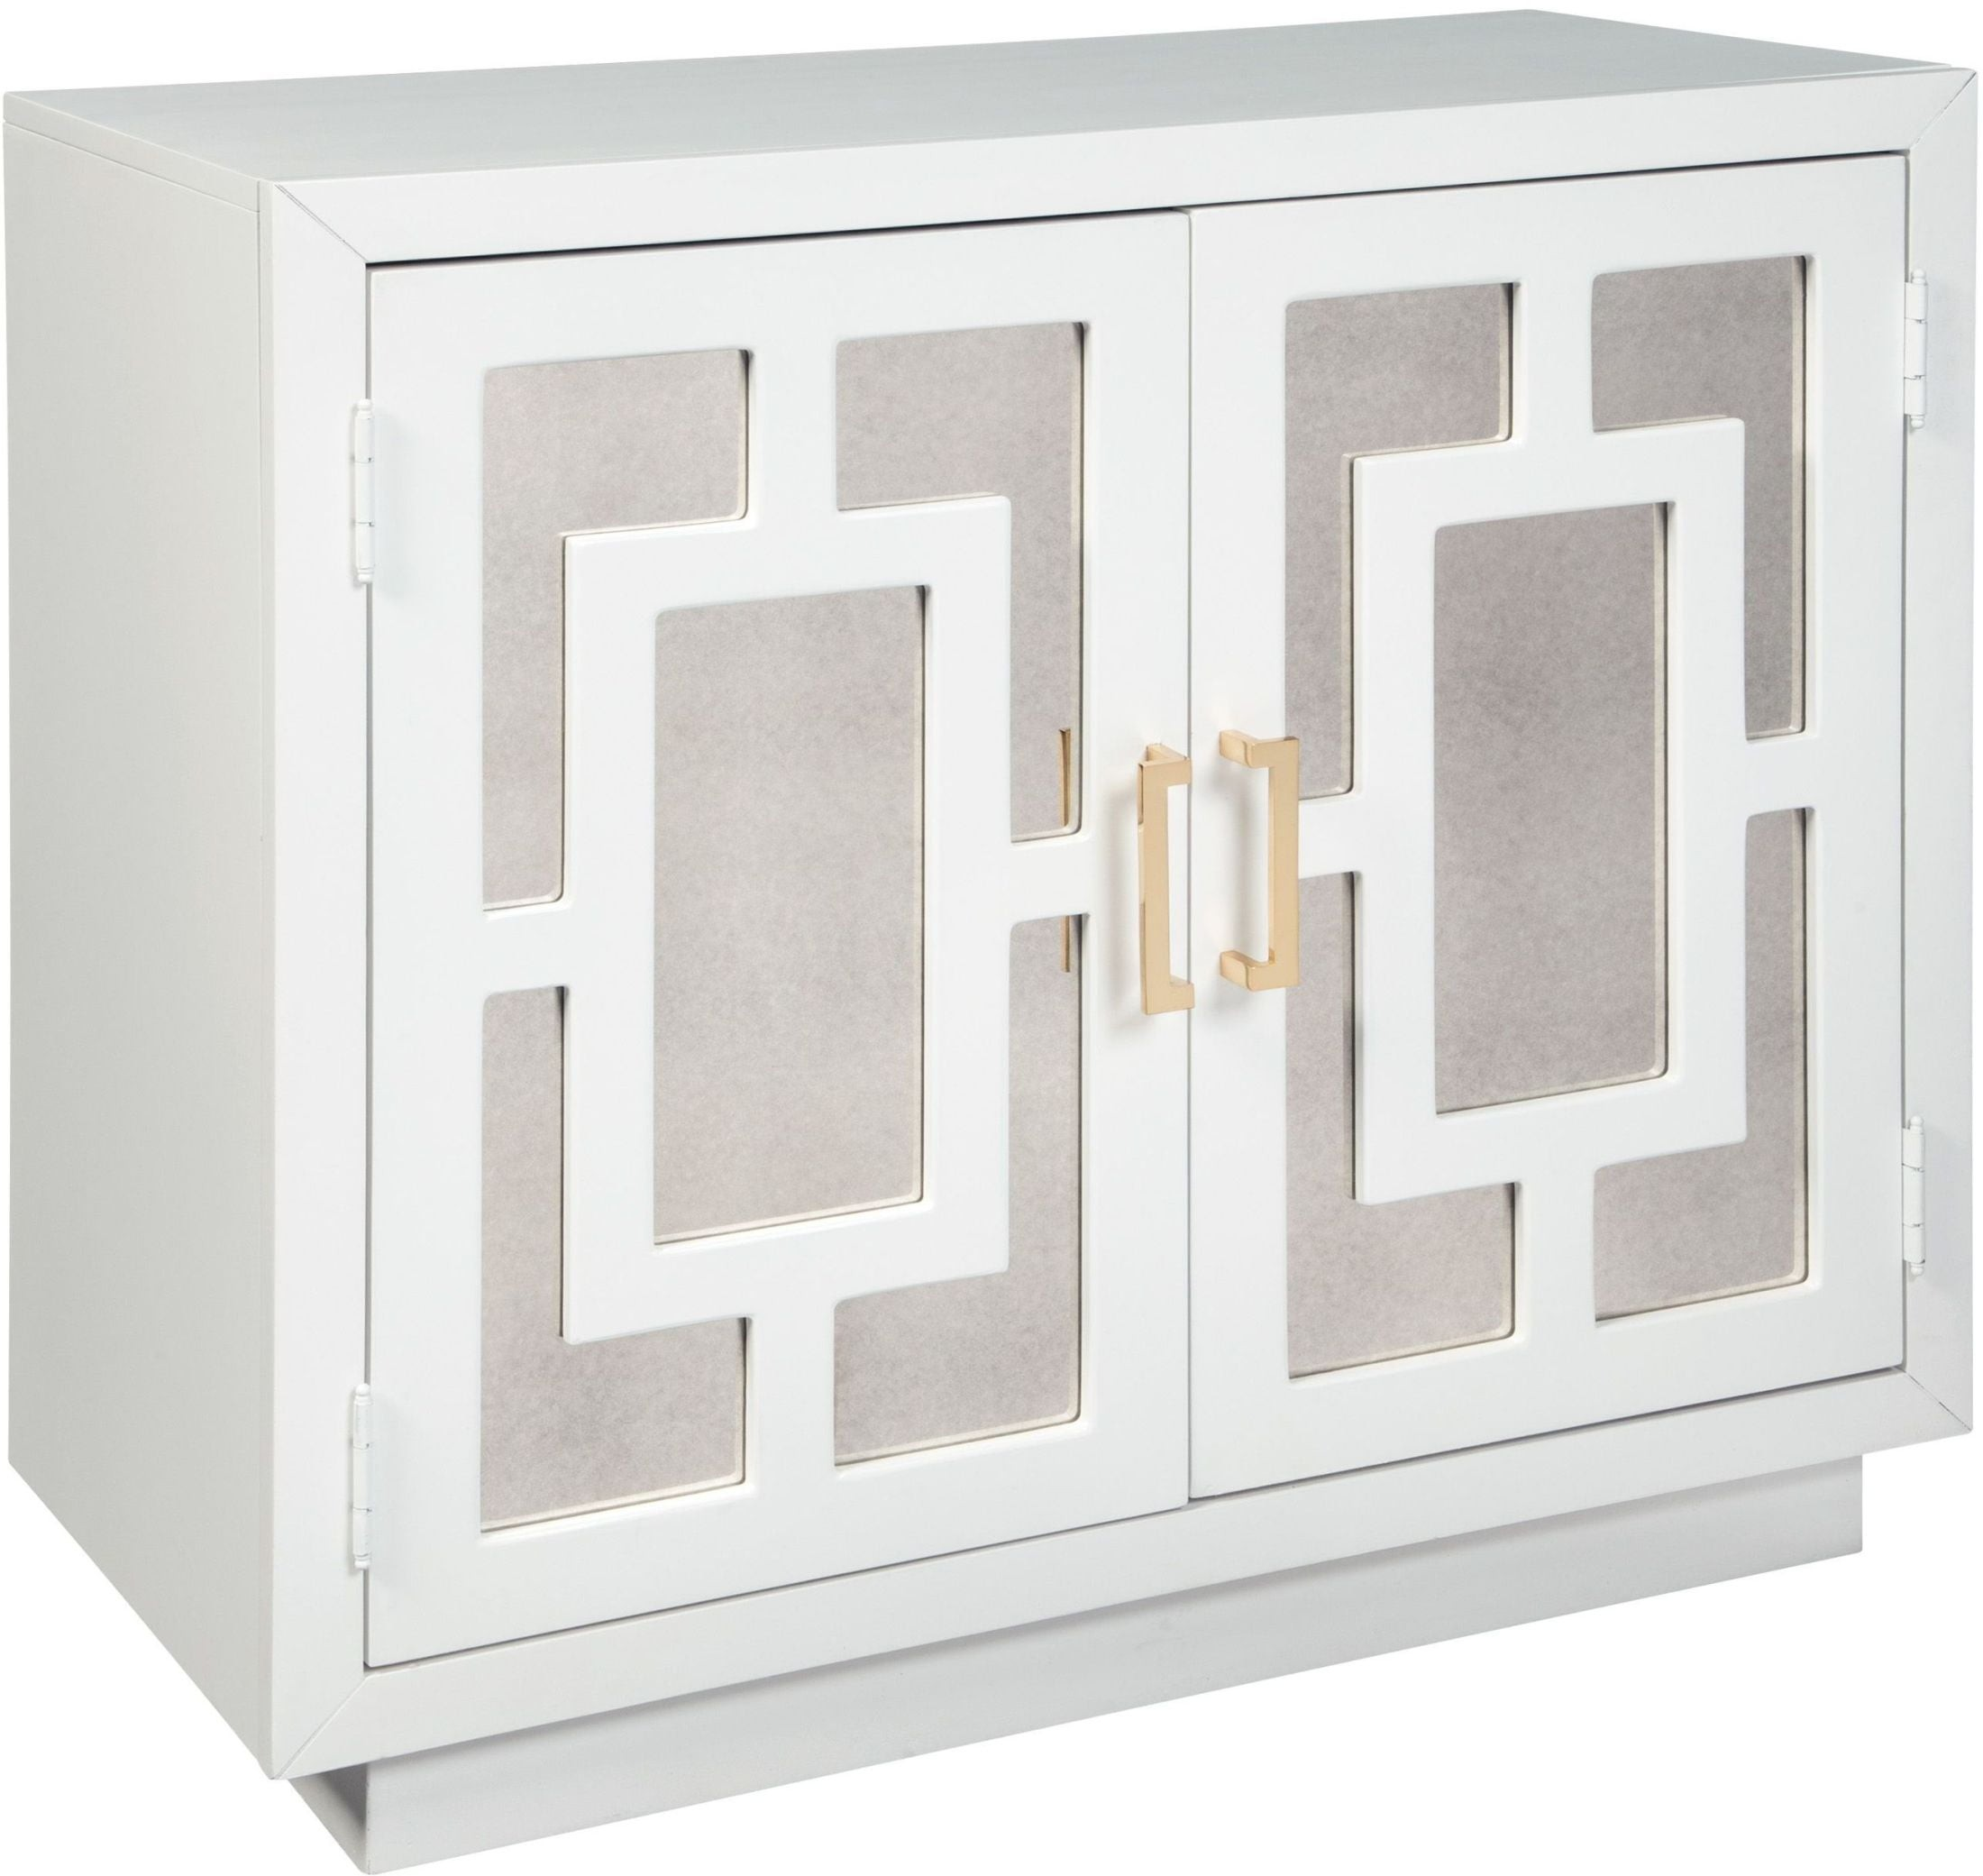 Walentin Accent Cabinet By Ashley Furniture: Walentin White Geometric Pattern Accent Cabinet